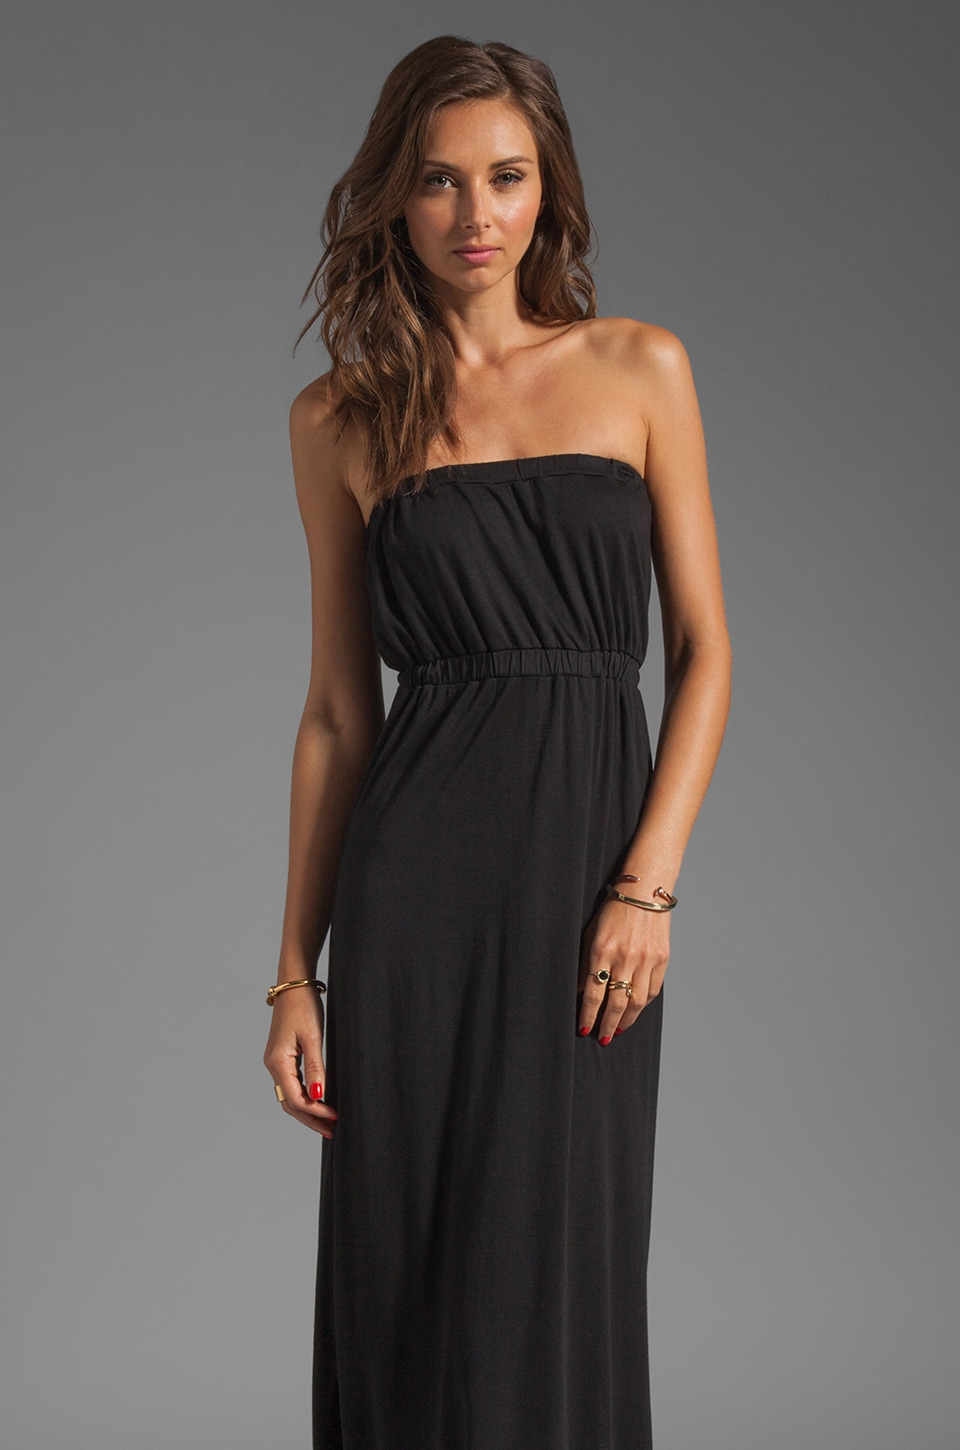 Soft Joie Cade Strapless Jersey Dress in Caviar